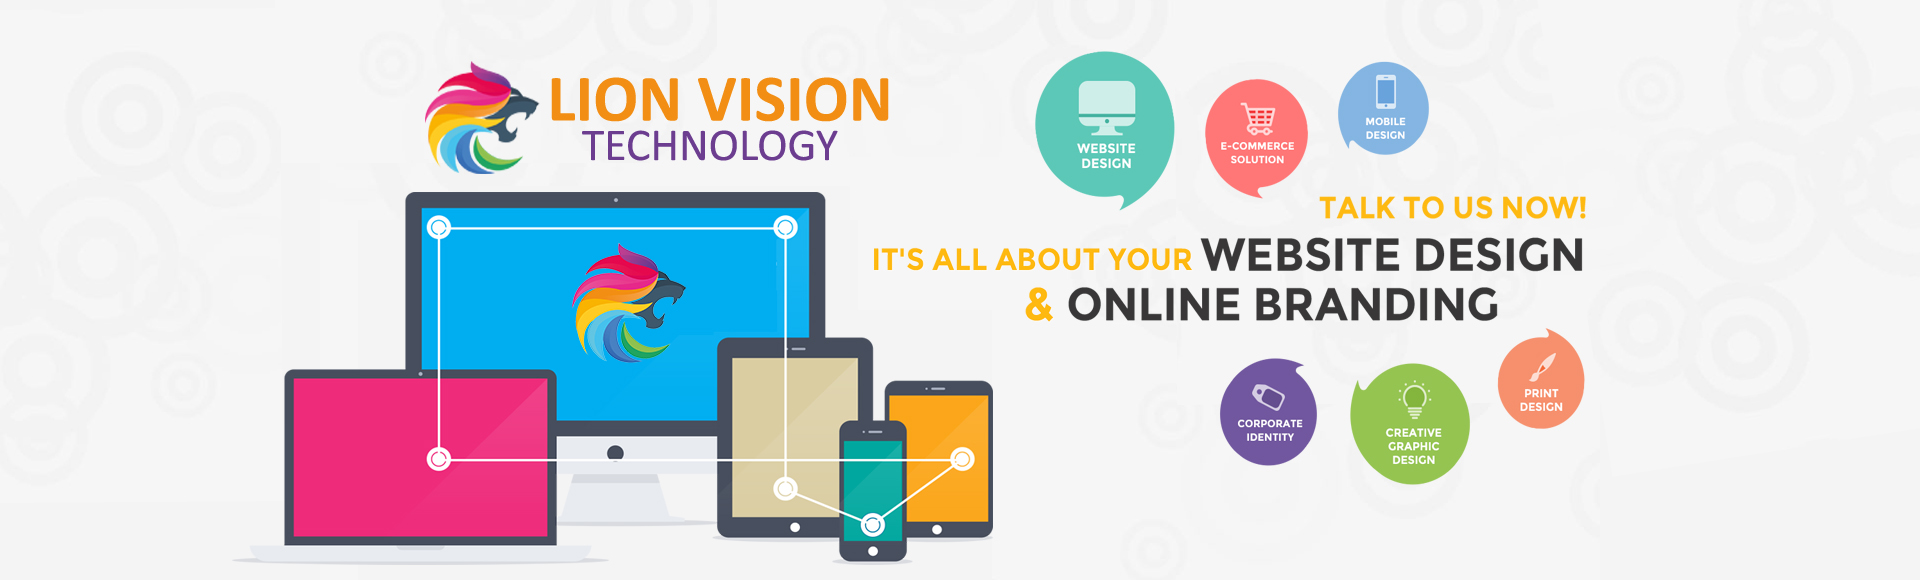 Lion Vision Home Page